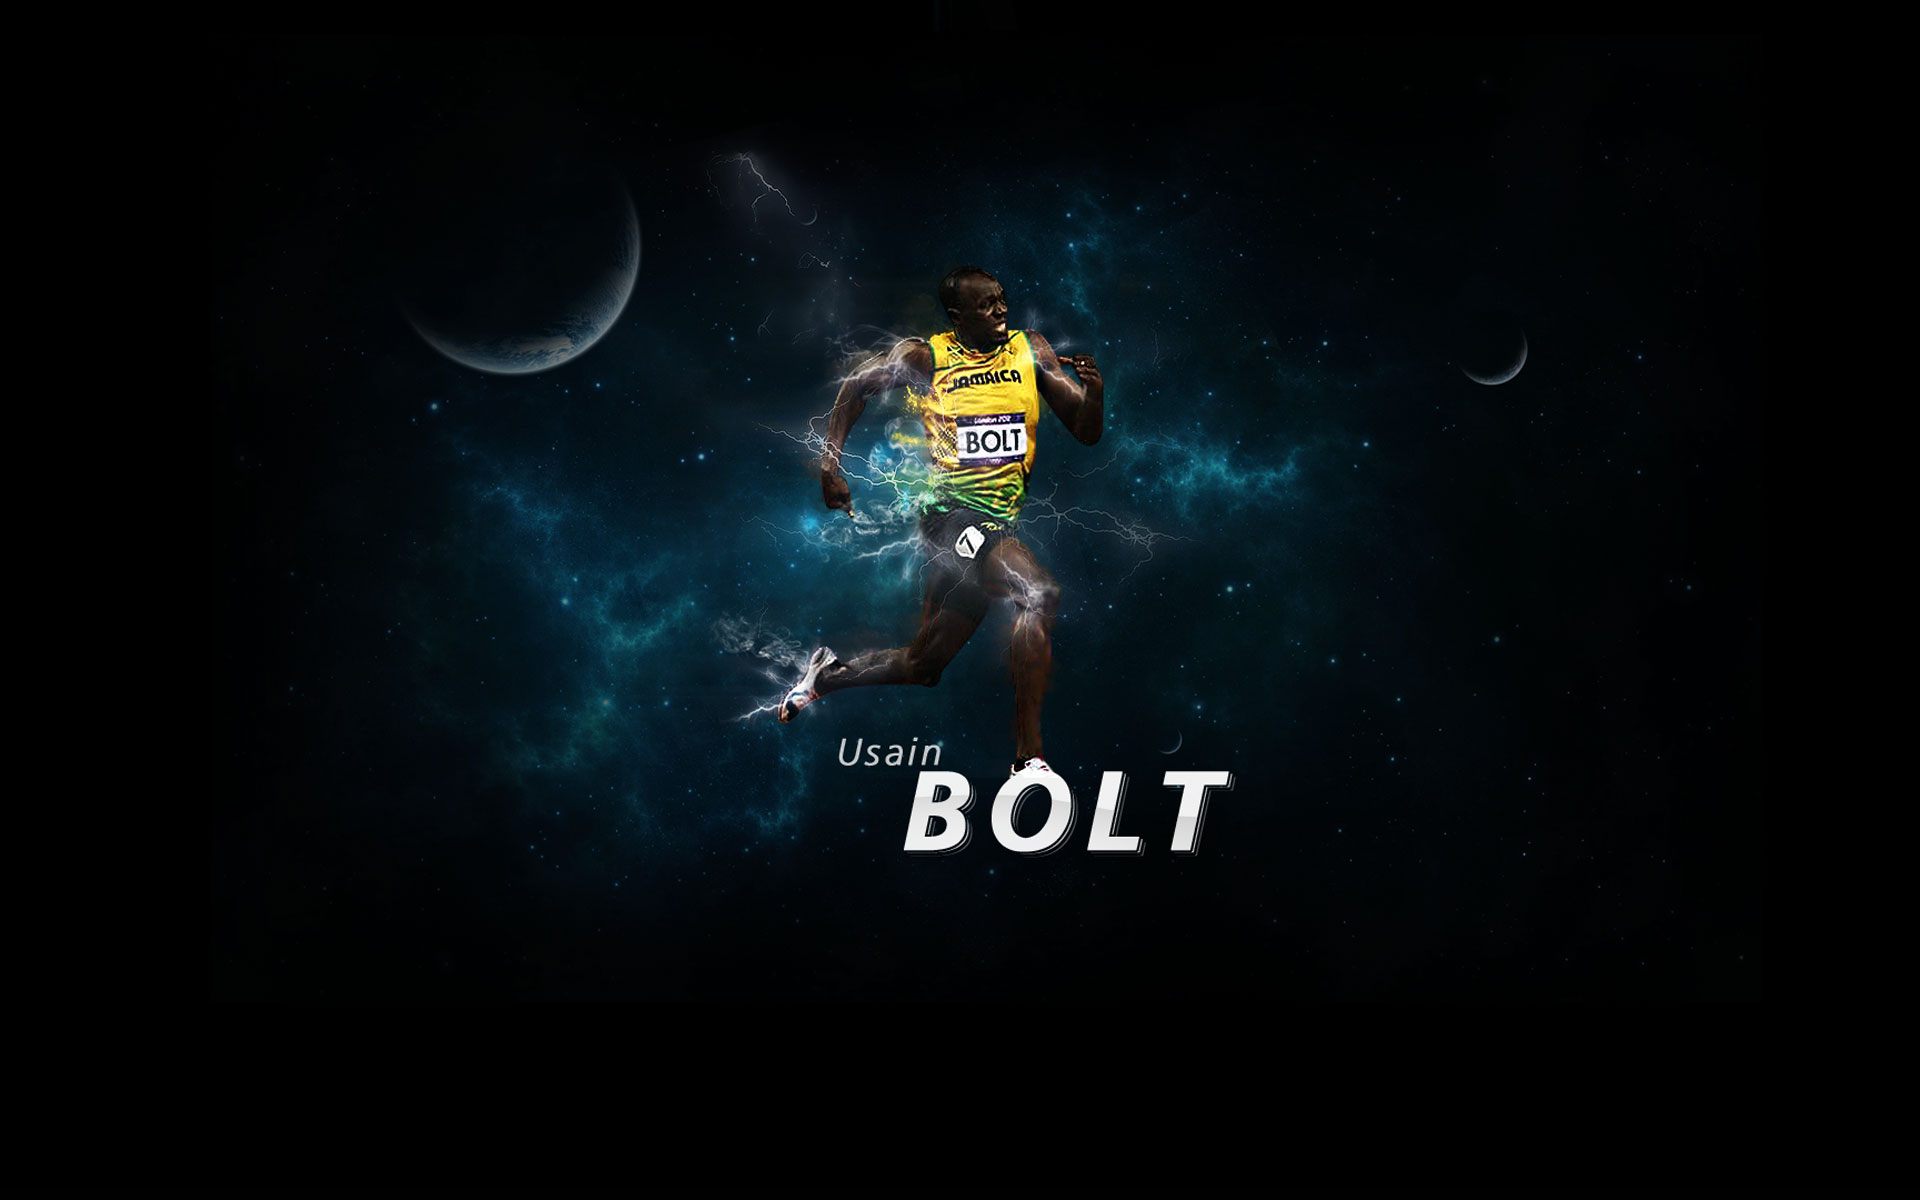 usain bolt wallpaper with quotes